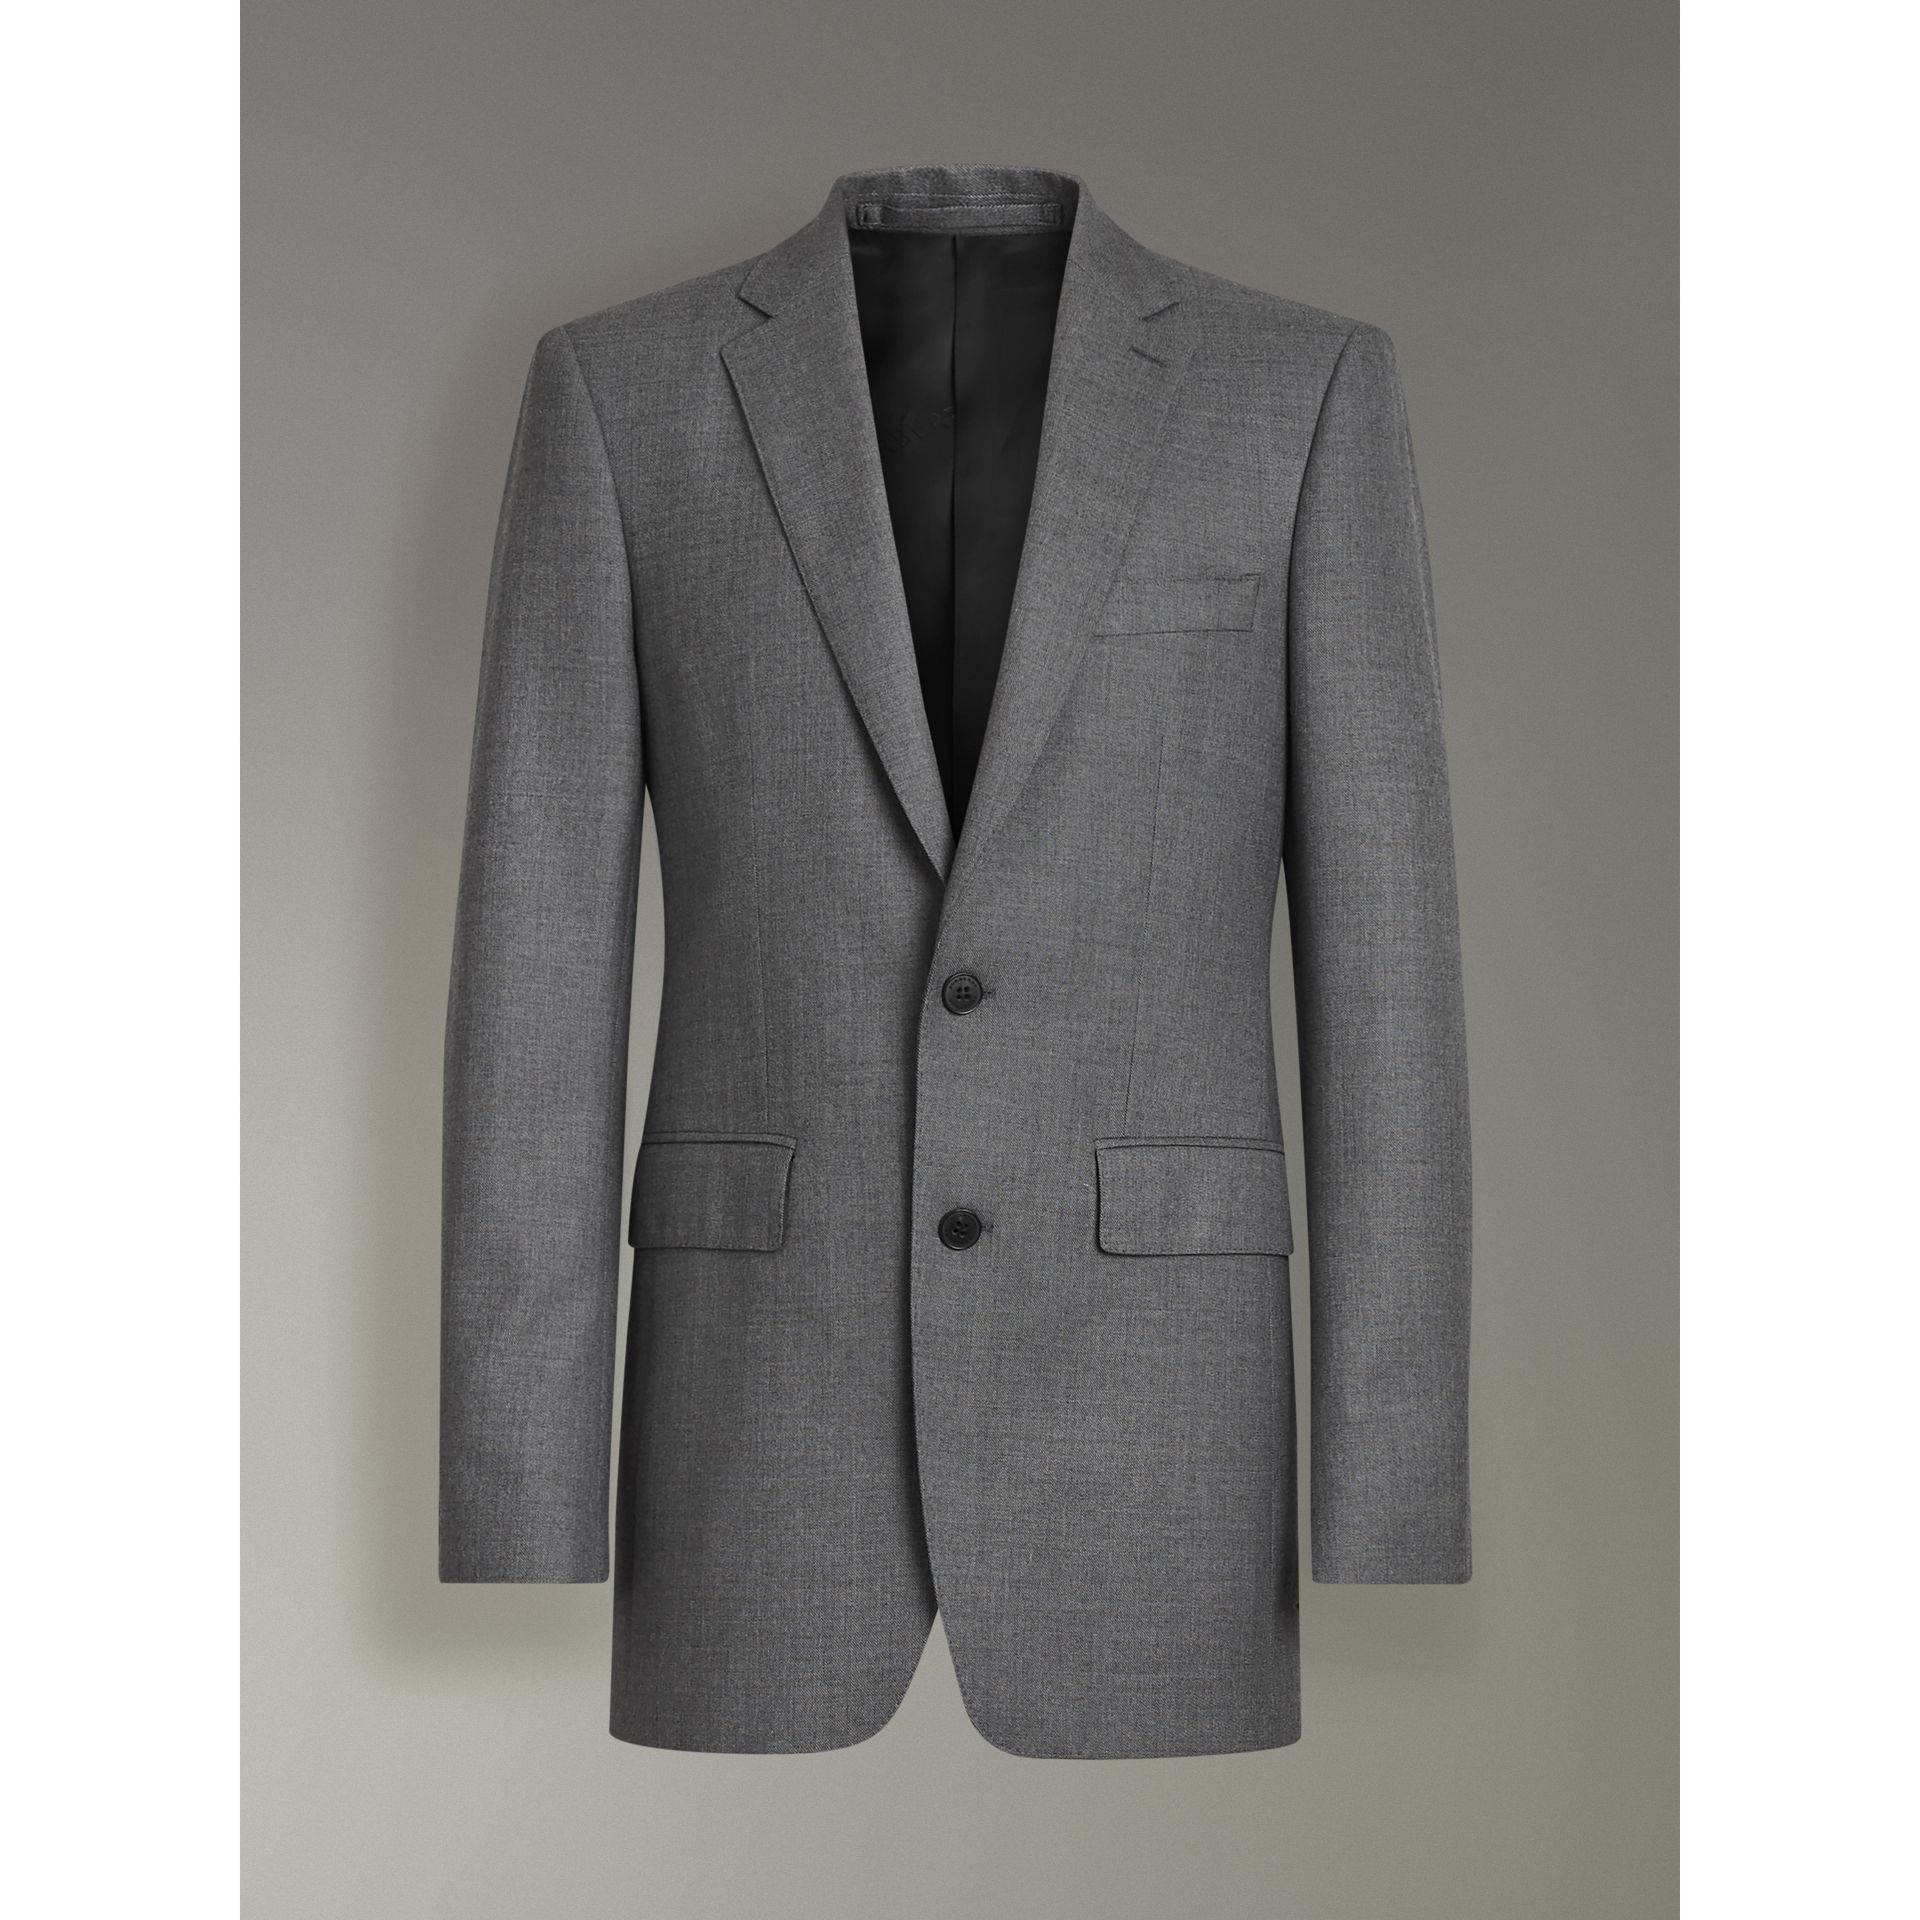 Classic Fit Sharkskin Wool Suit in Mid Grey Melange - Men | Burberry - gallery image 3